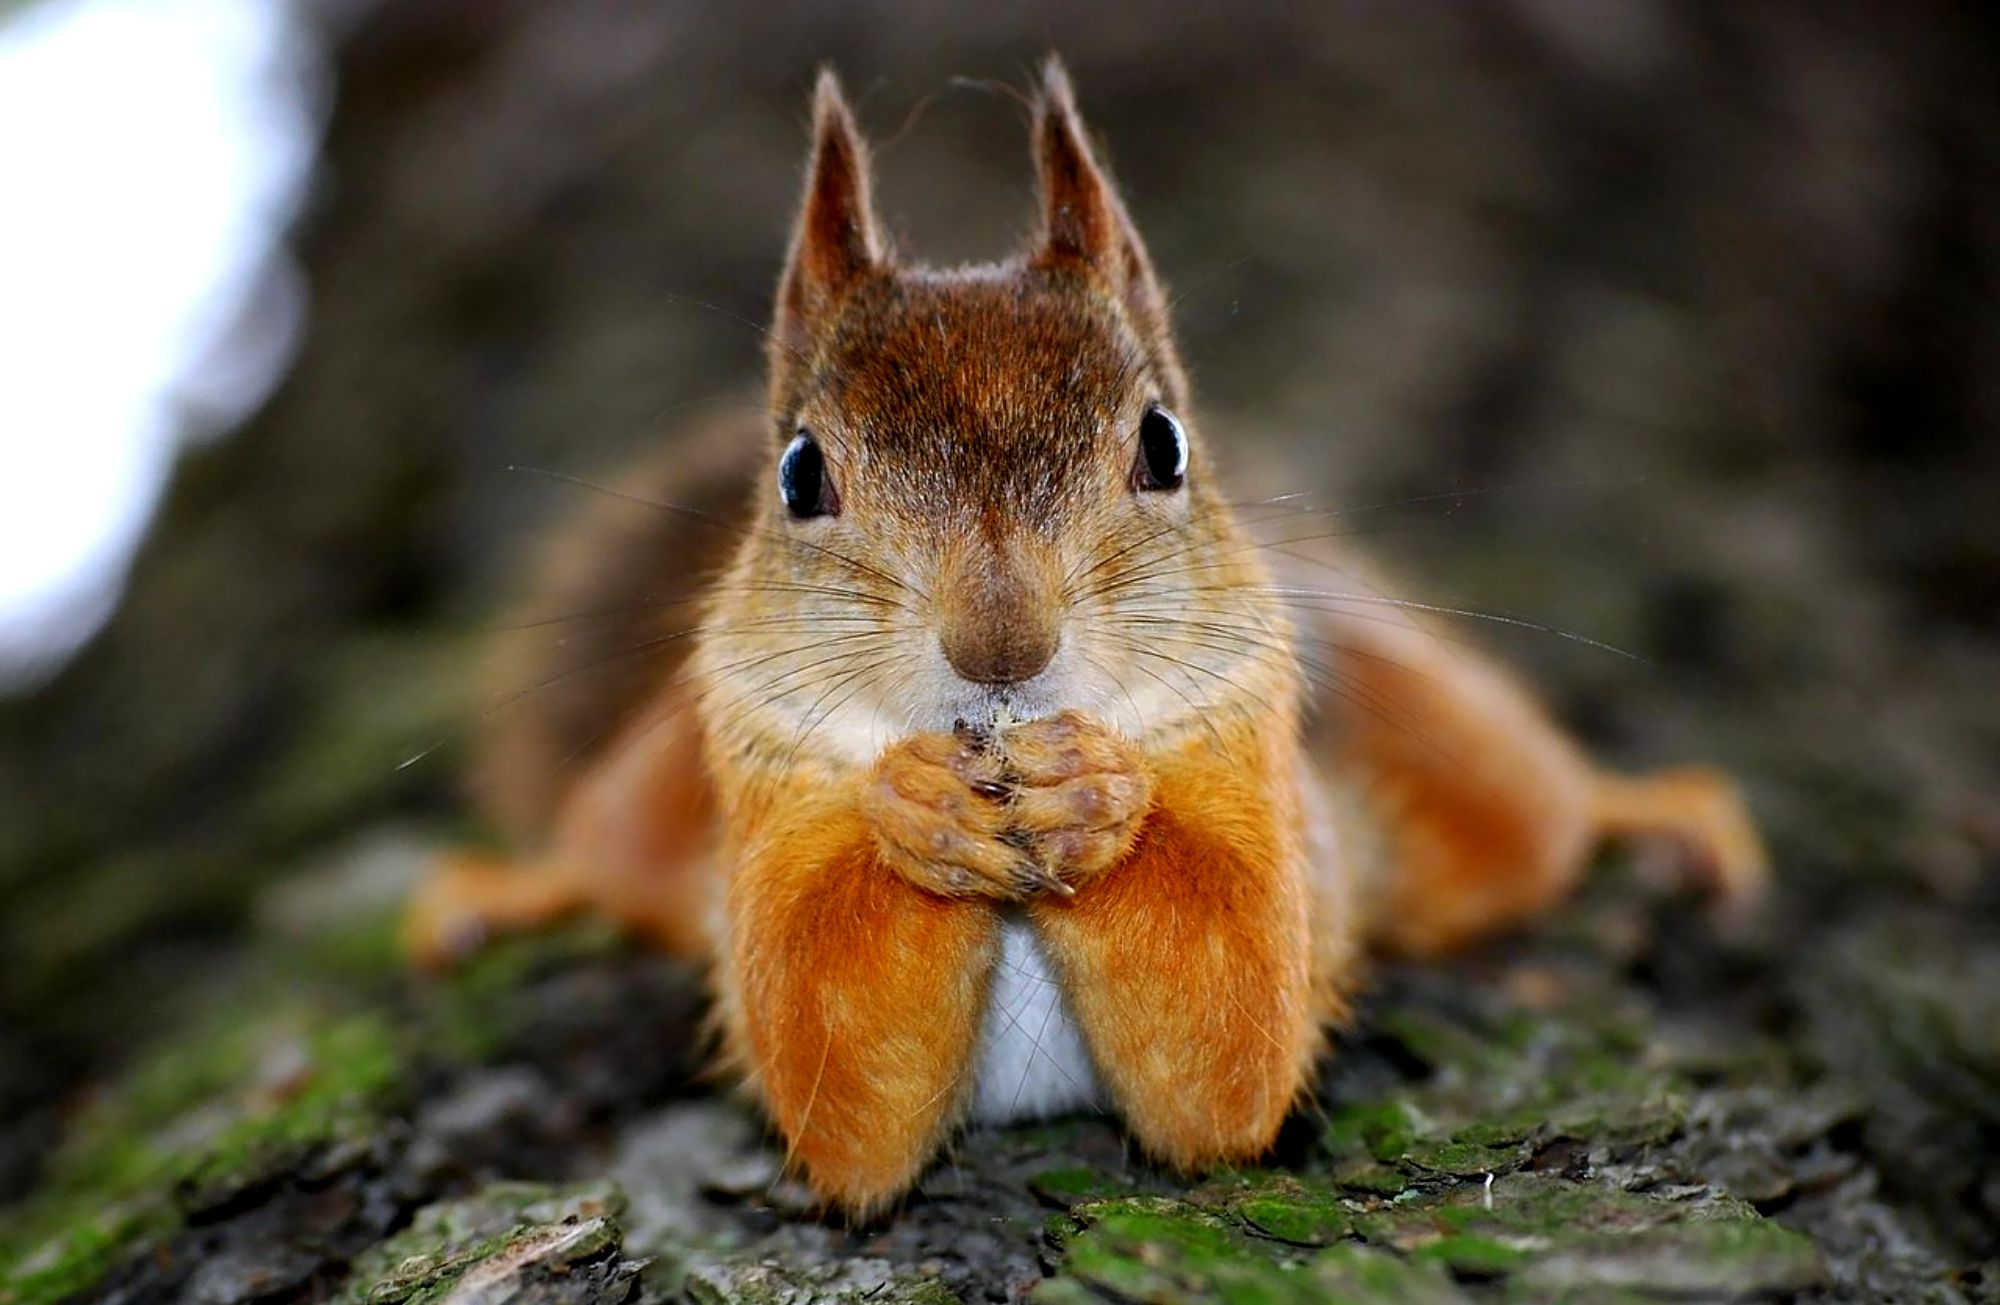 Squirrel computer wallpapers desktop backgrounds - Funny squirrel backgrounds ...